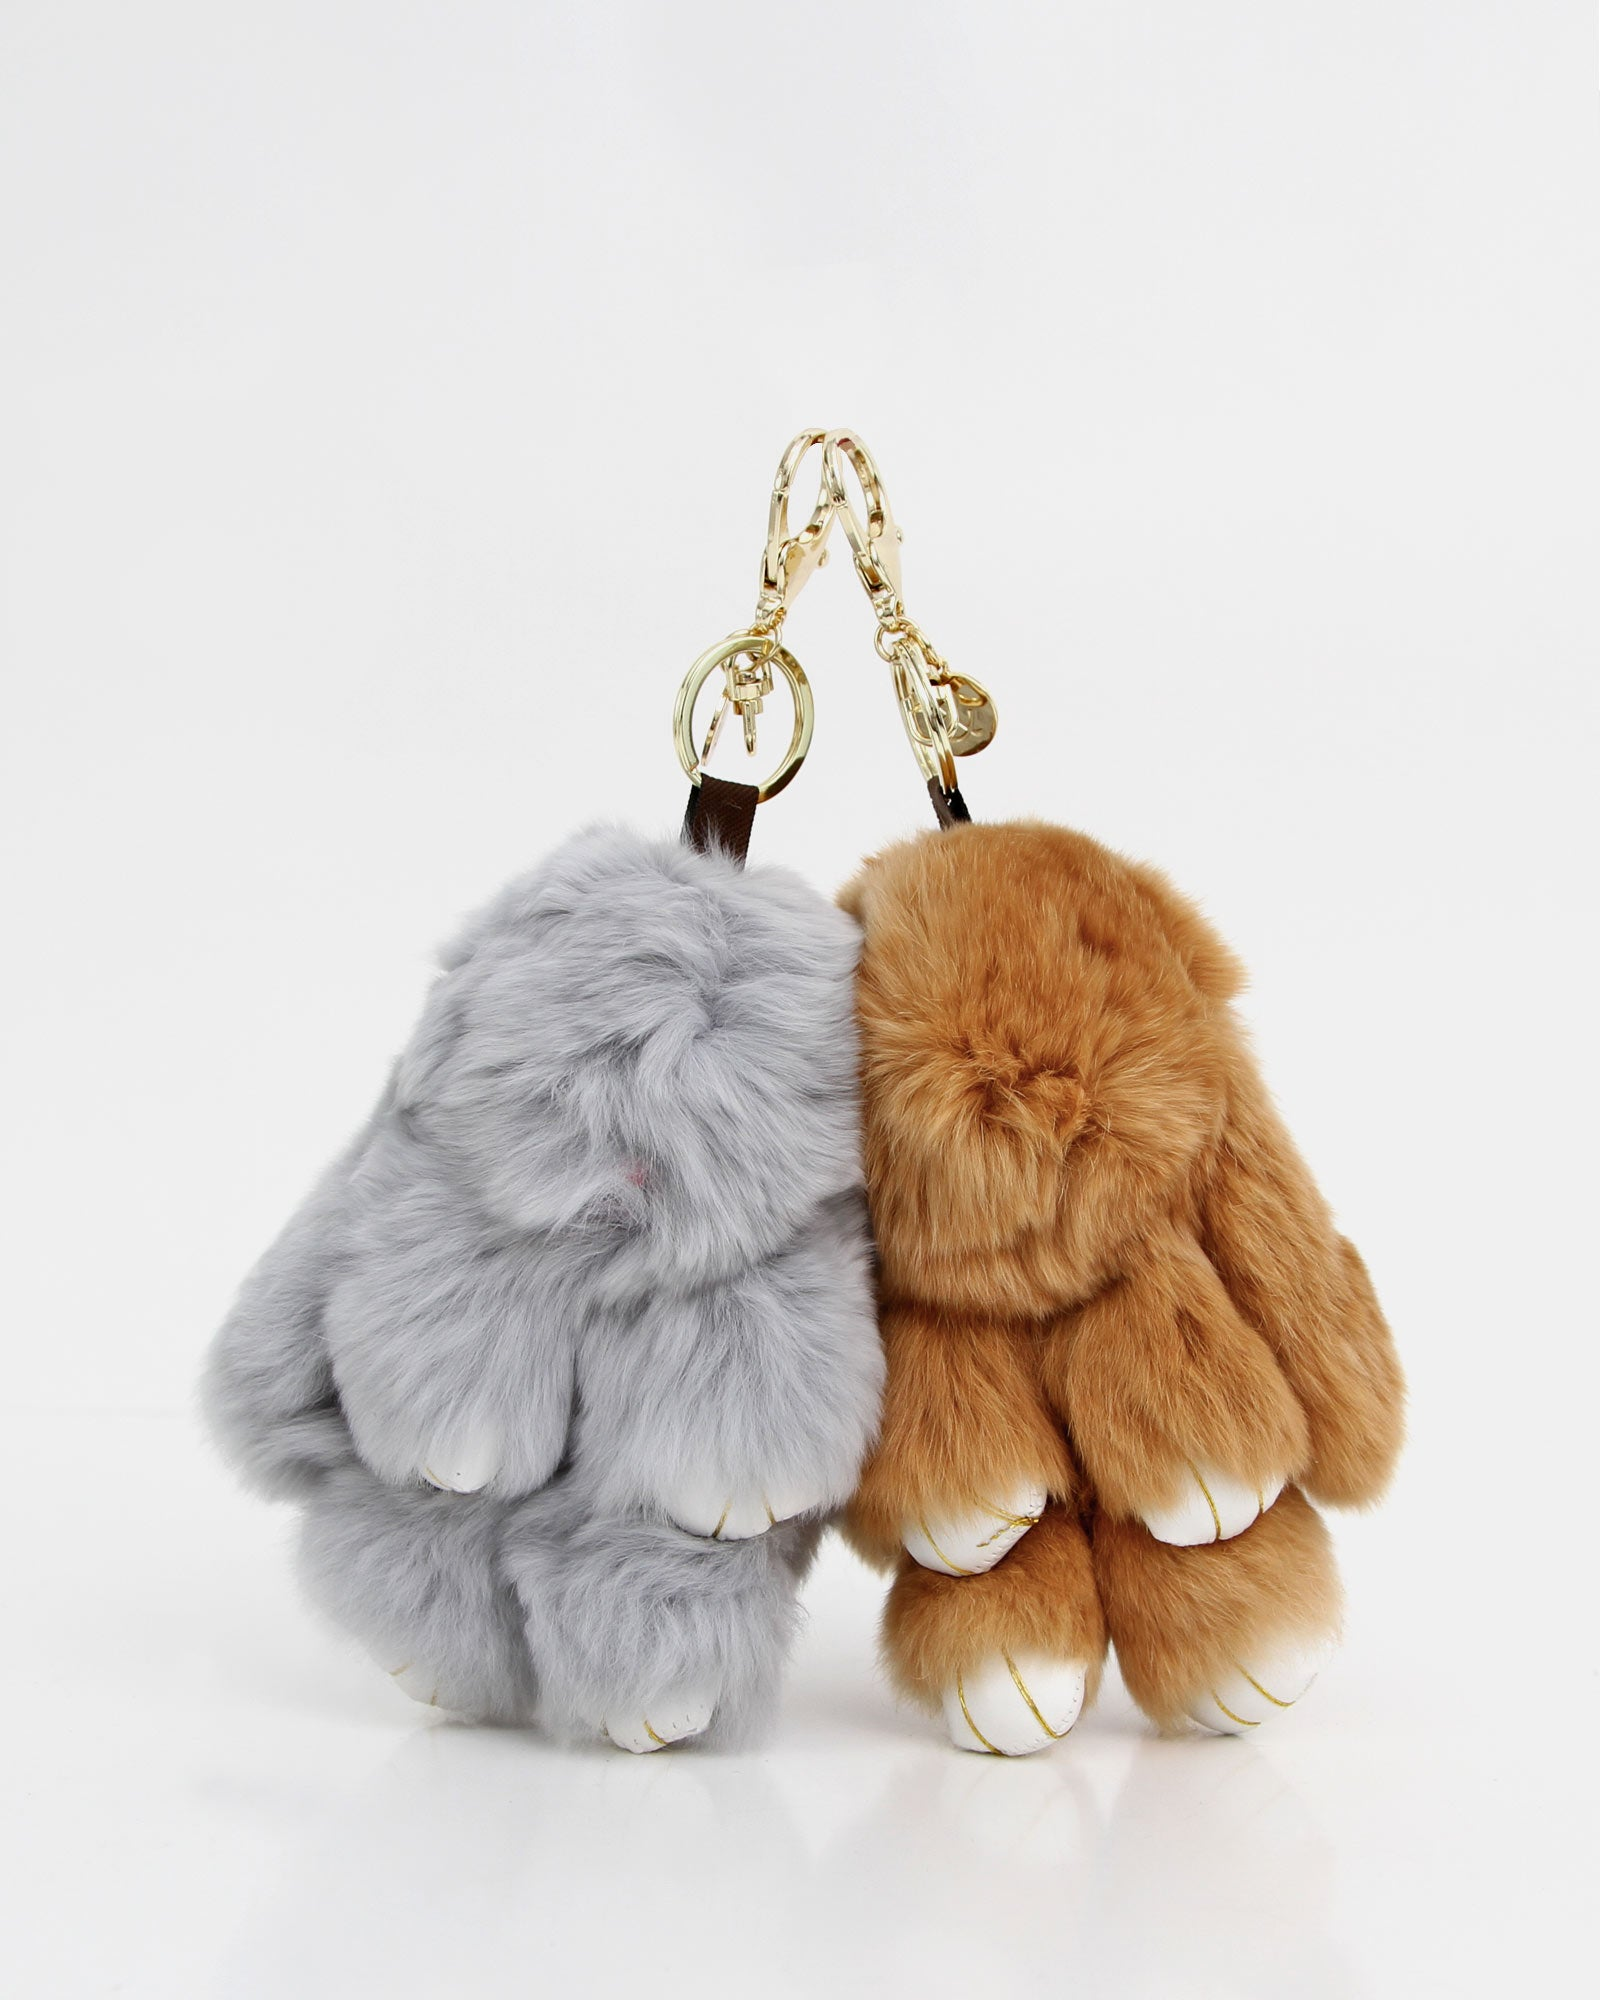 brown-and-grey-bunny-key-chain.jpg